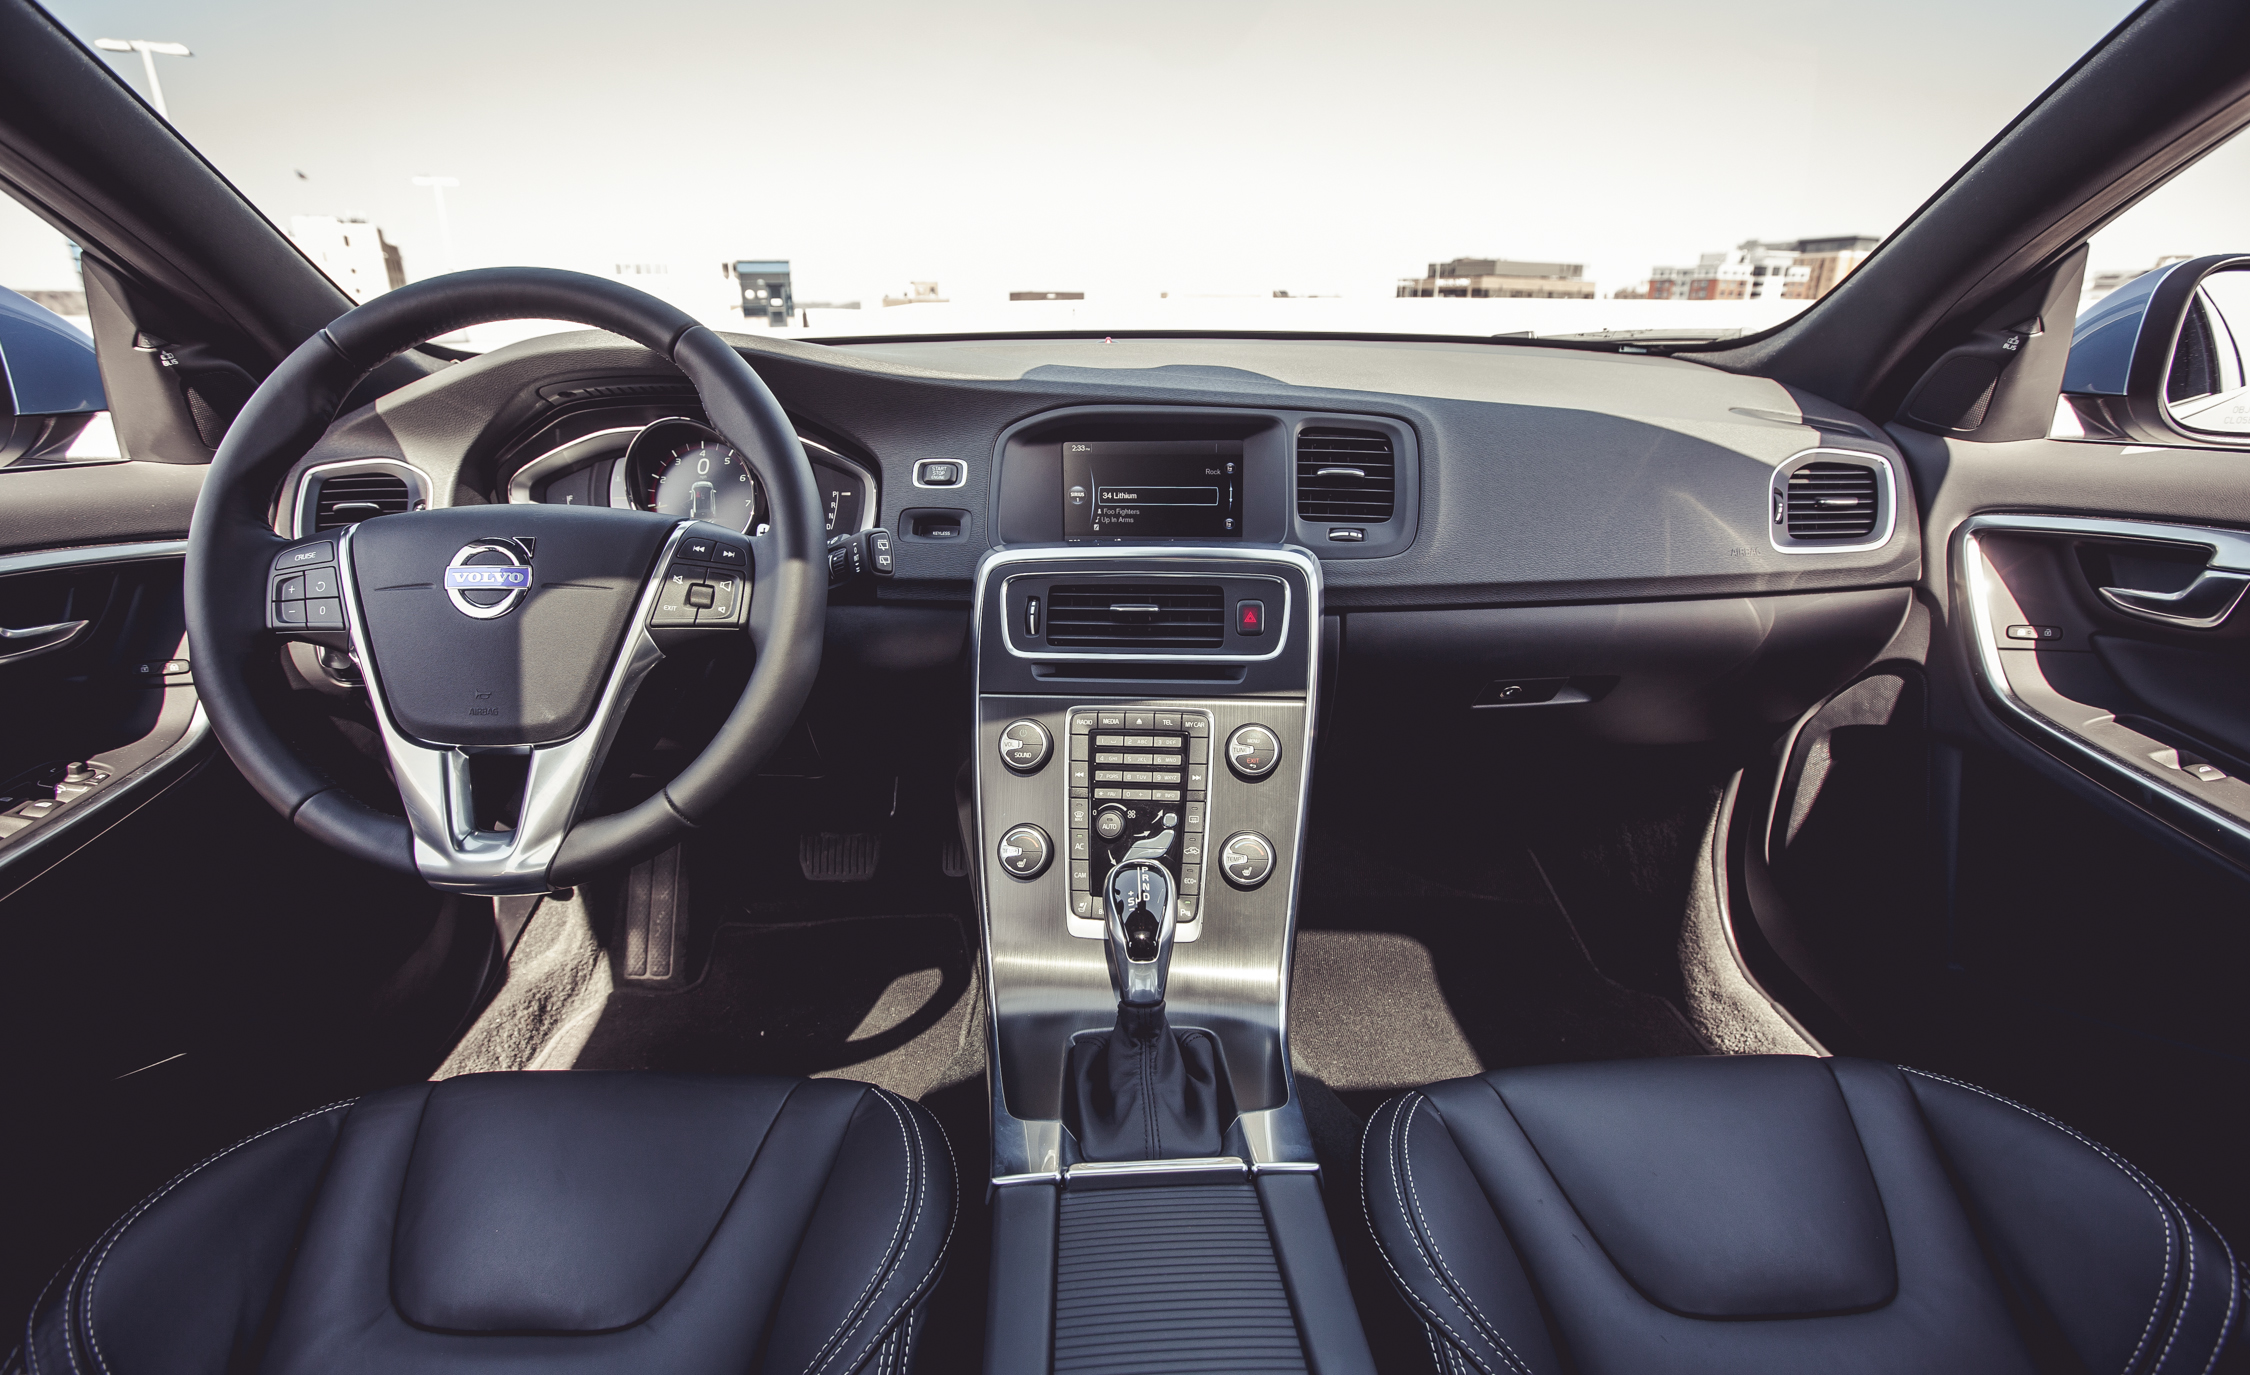 2015 Volvo V60 Interior (Photo 19 of 38)